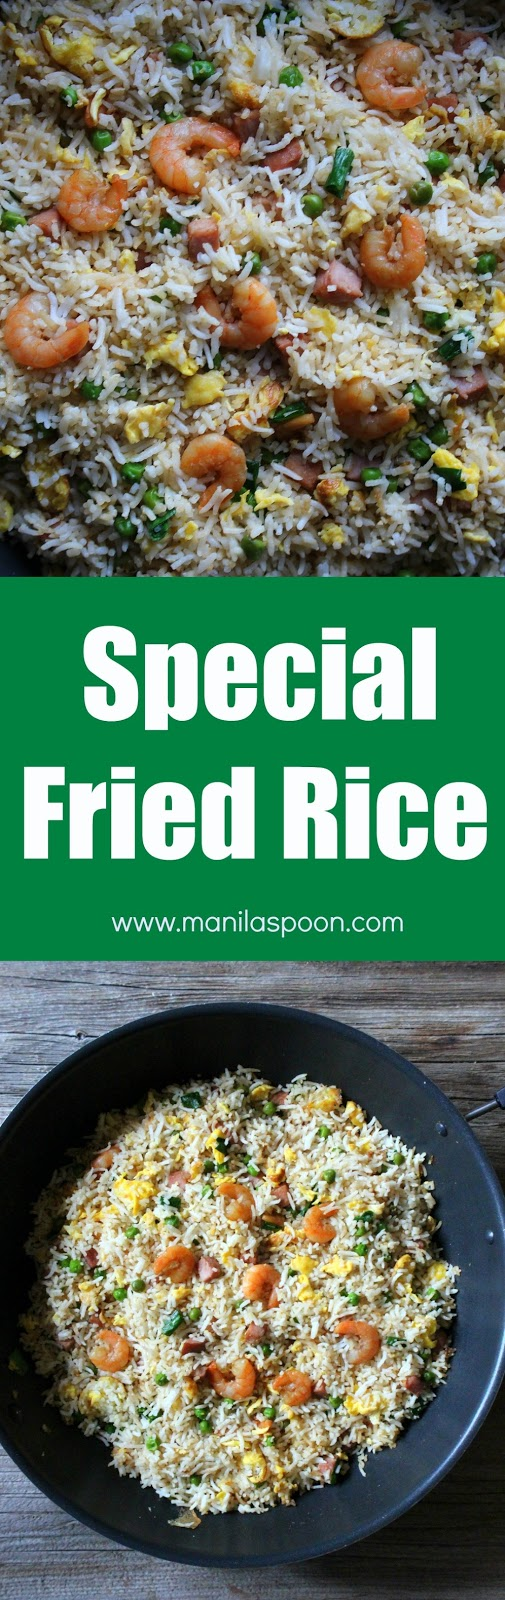 Special Fried Rice - Manila Spoon